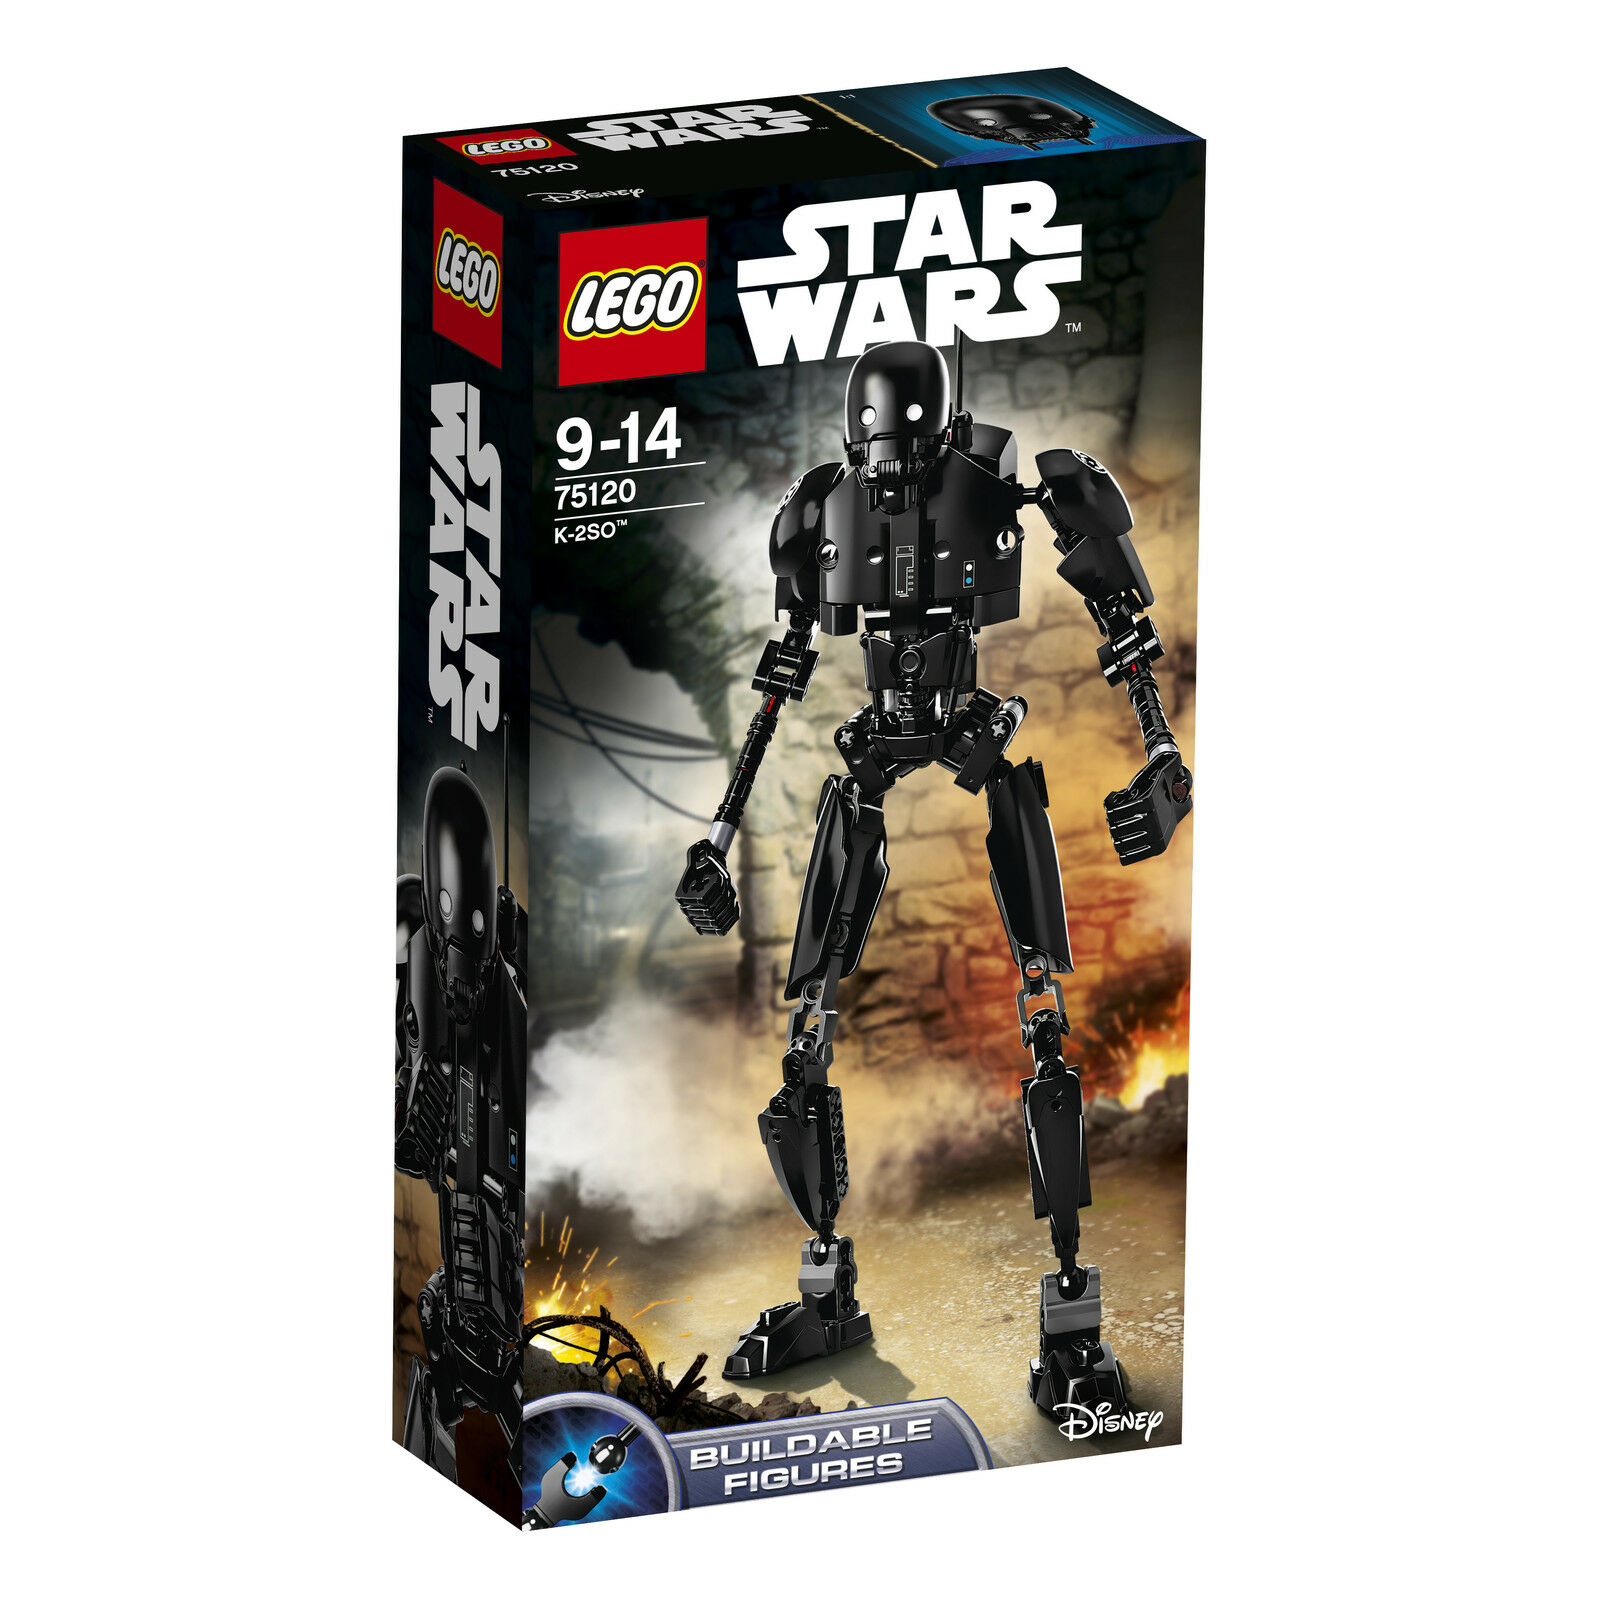 LEGO ® Star Wars ™ 75120 k-2so ™ NUOVO OVP NEW MISB NRFB